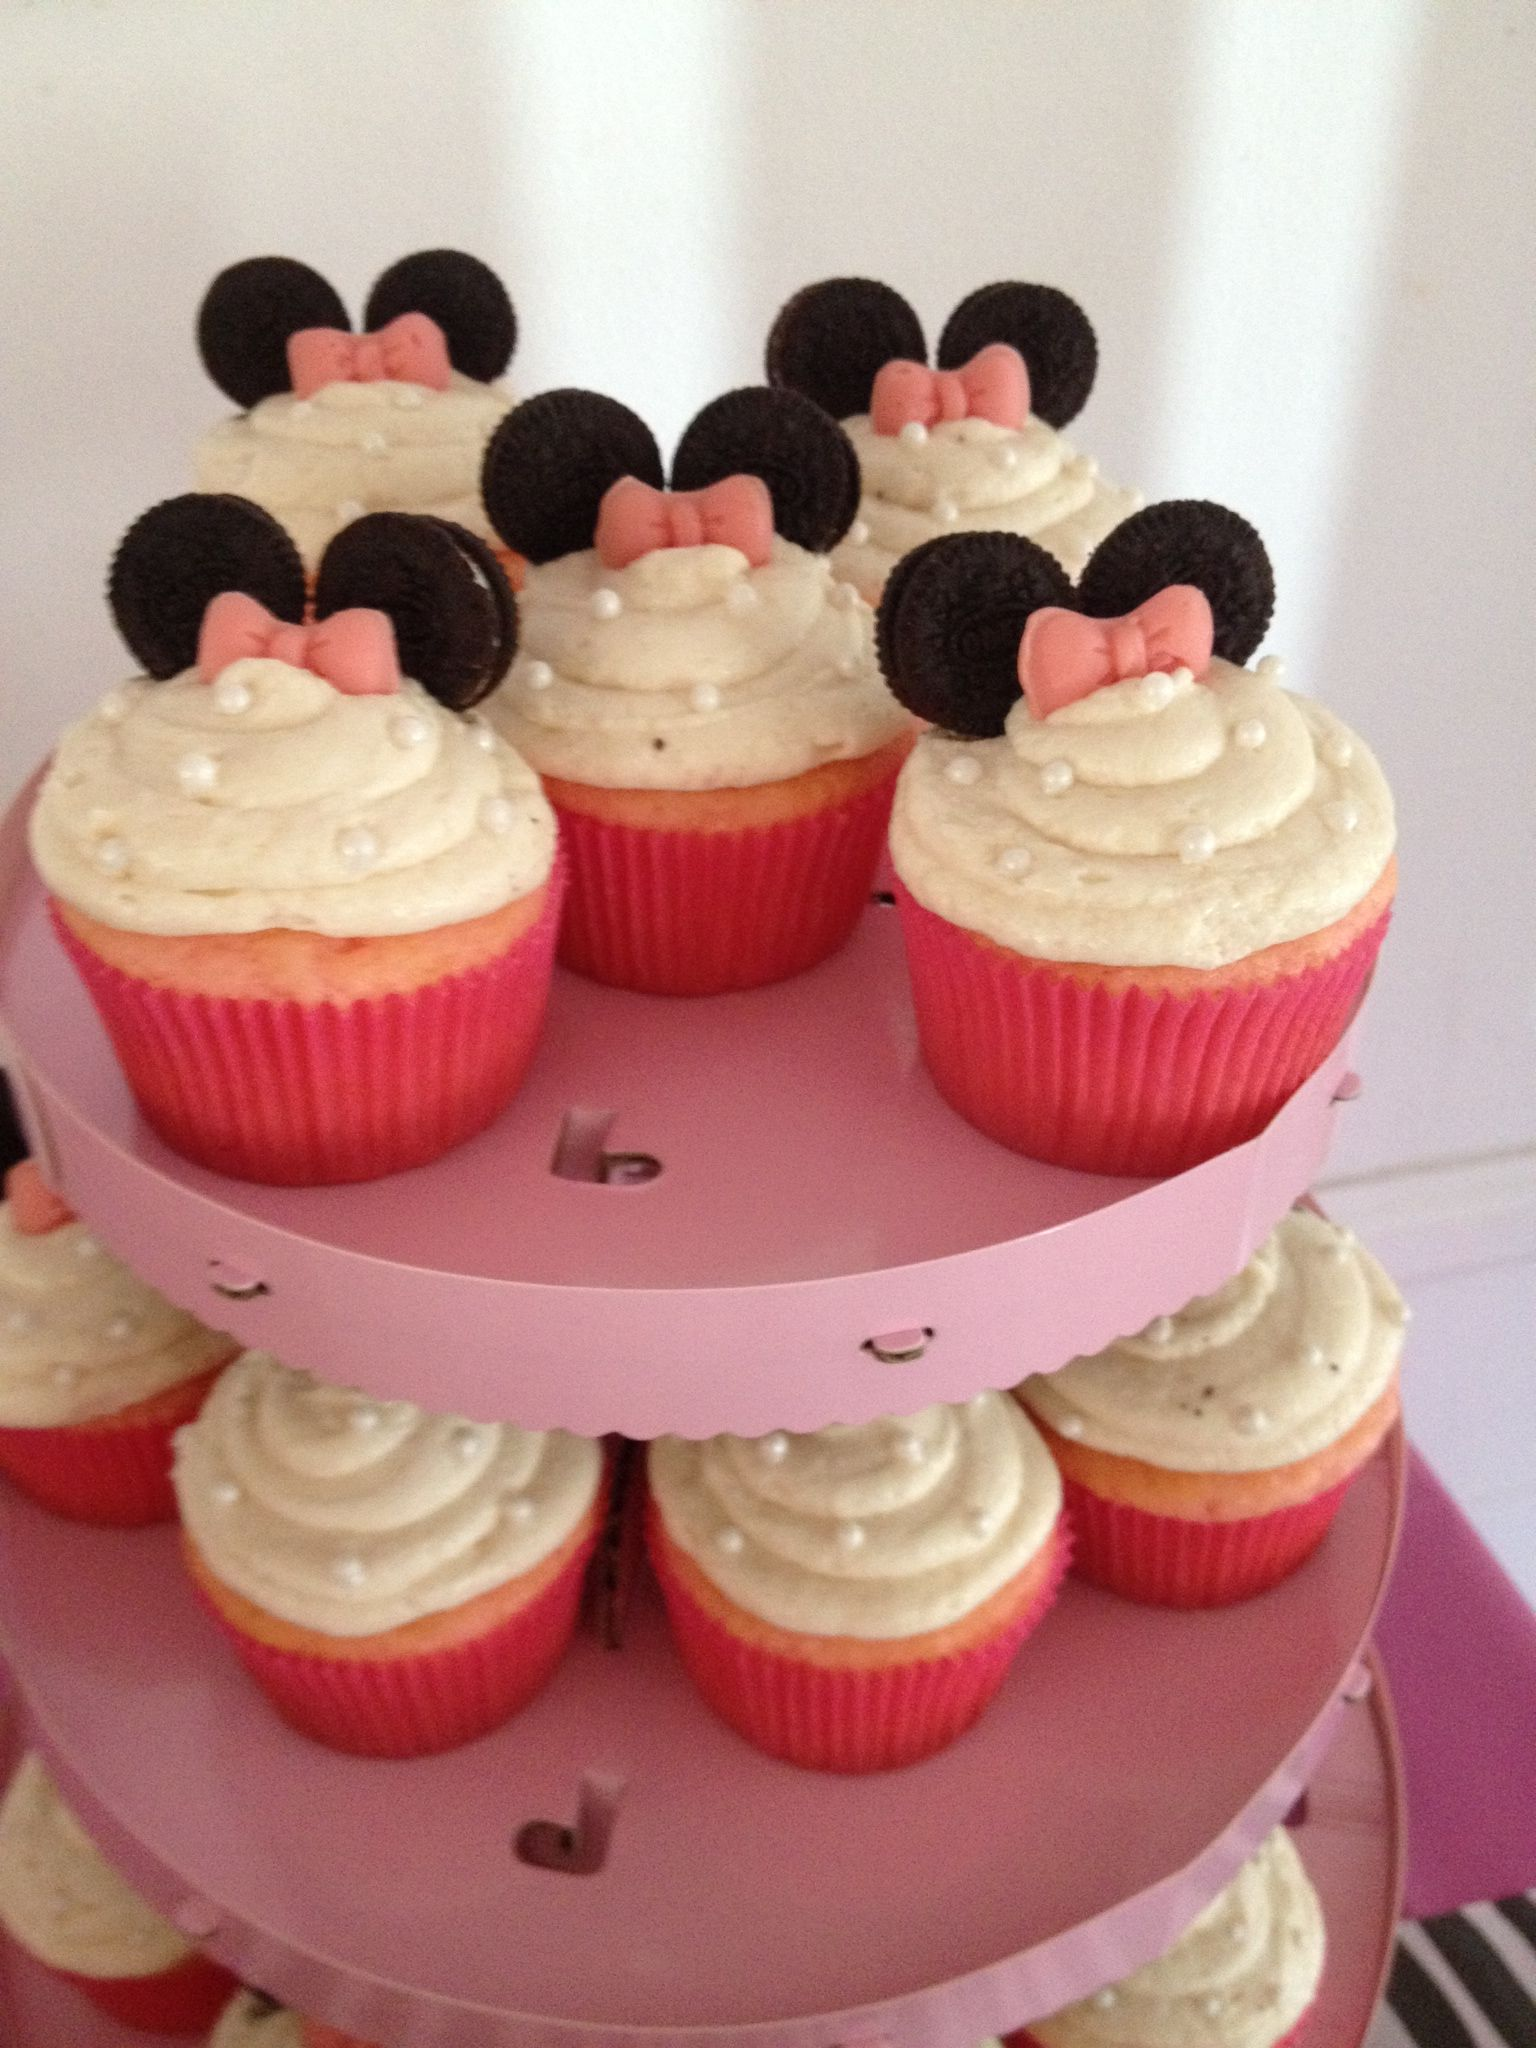 Minnie Mouse Cupcakes The Cakes I Make Pinterest